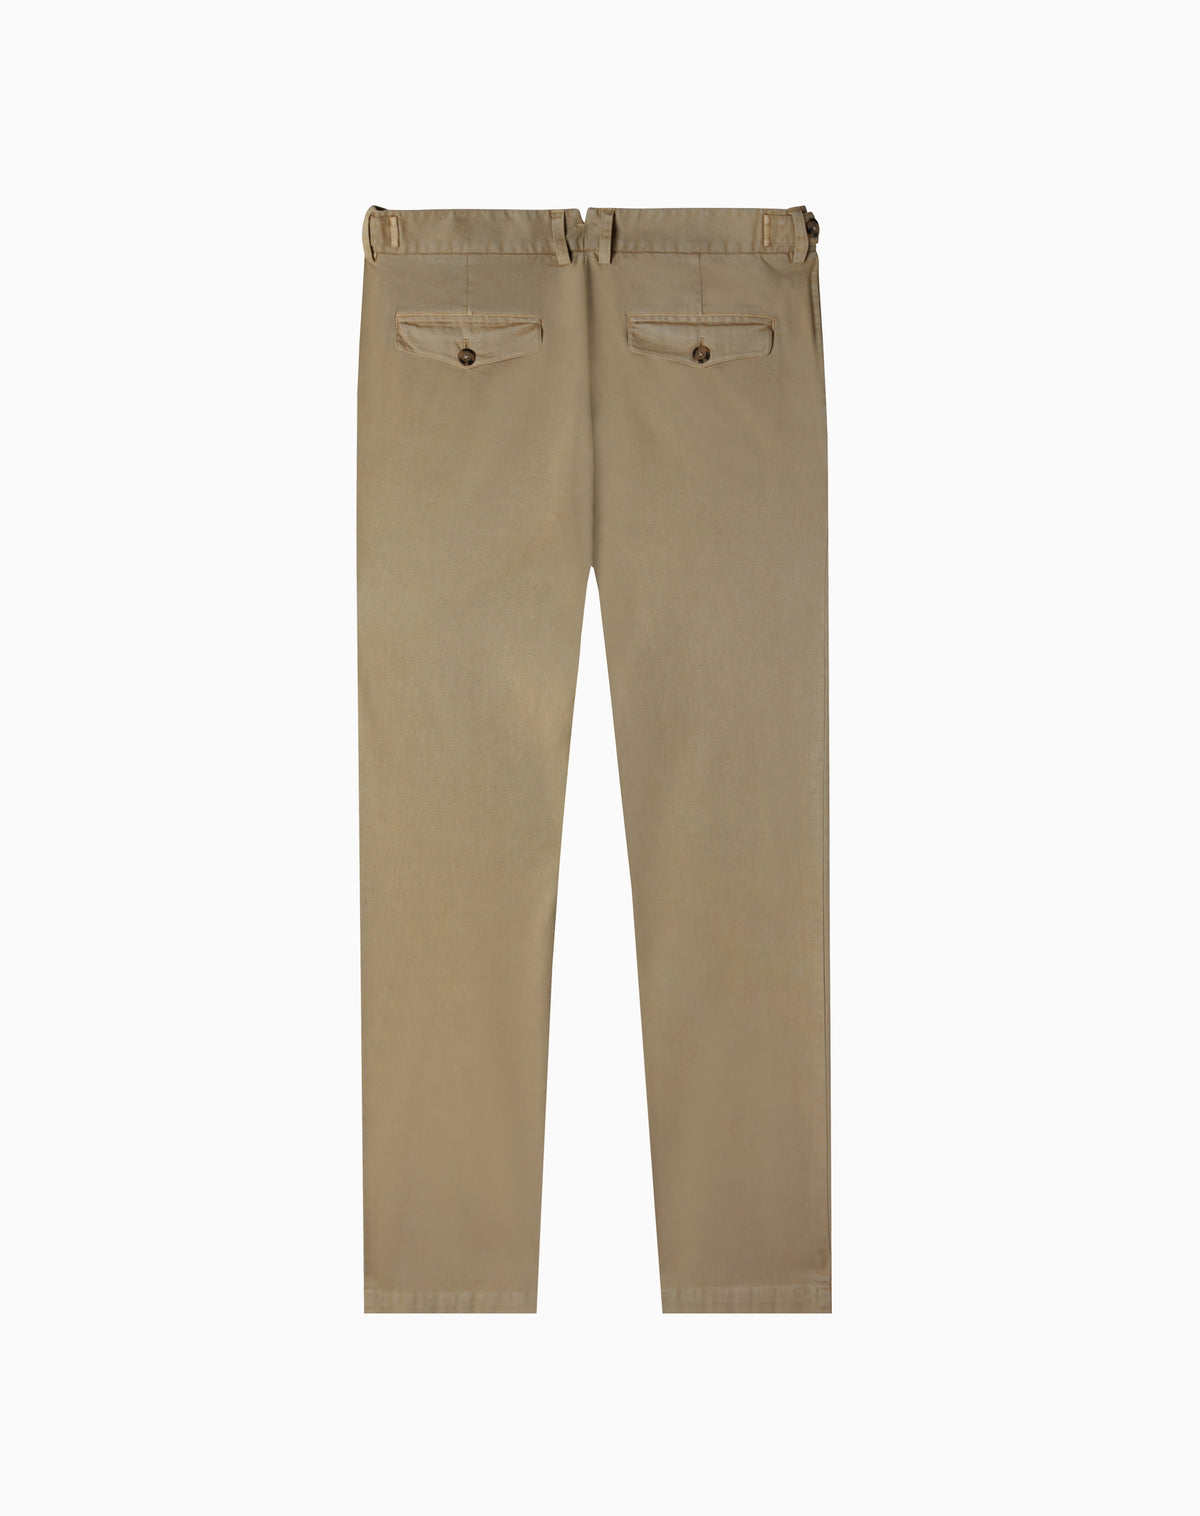 Gates Pant in Khaki